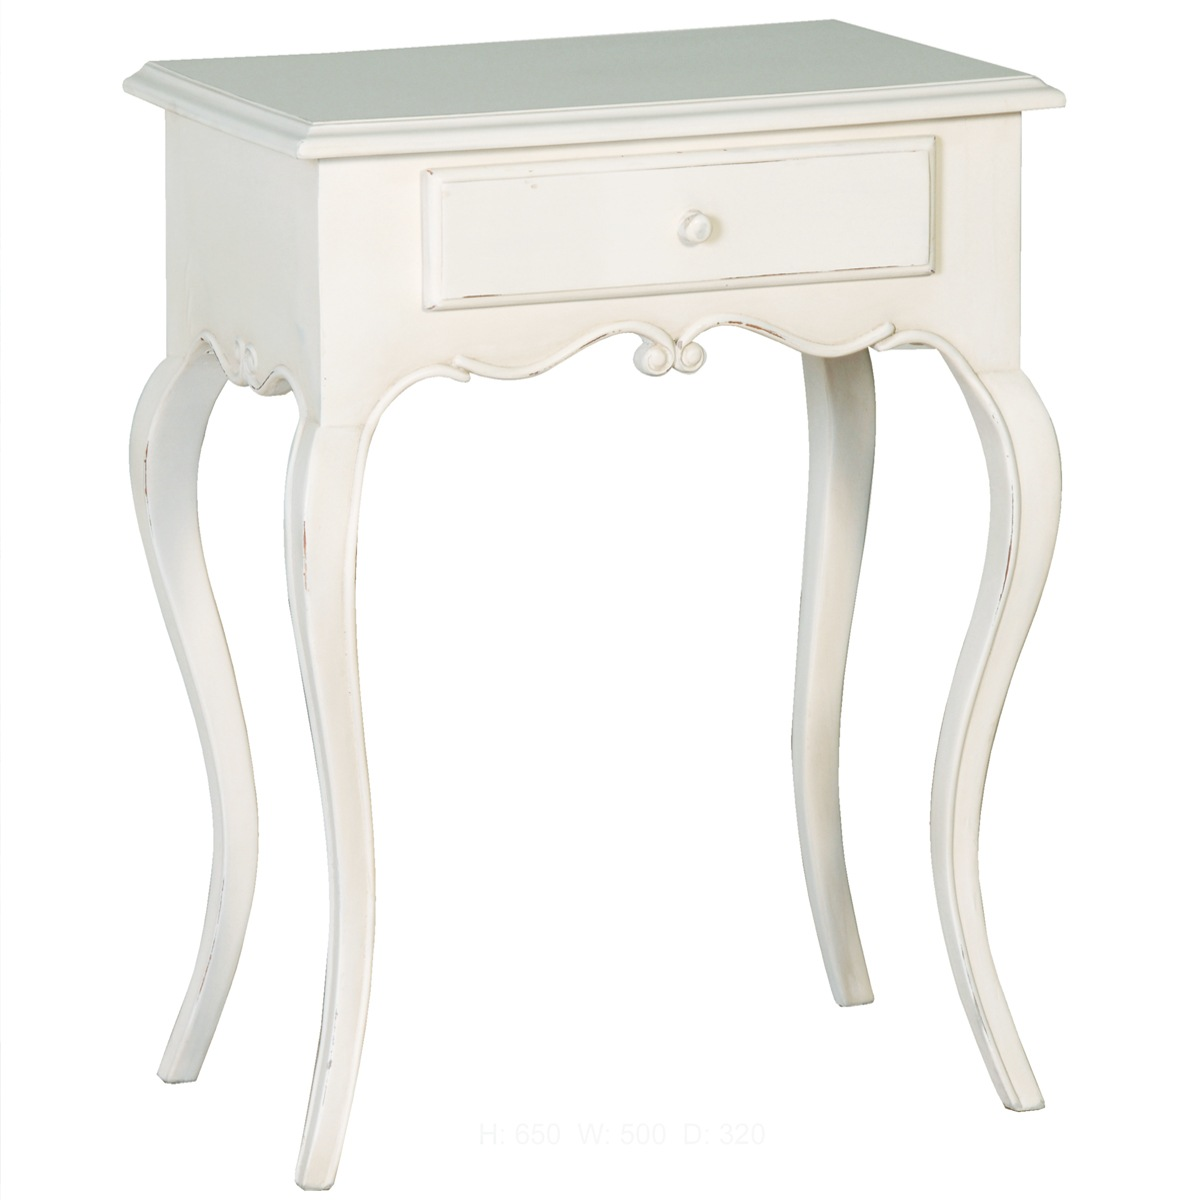 Top White Bedside Table 1200 x 1200 · 235 kB · jpeg